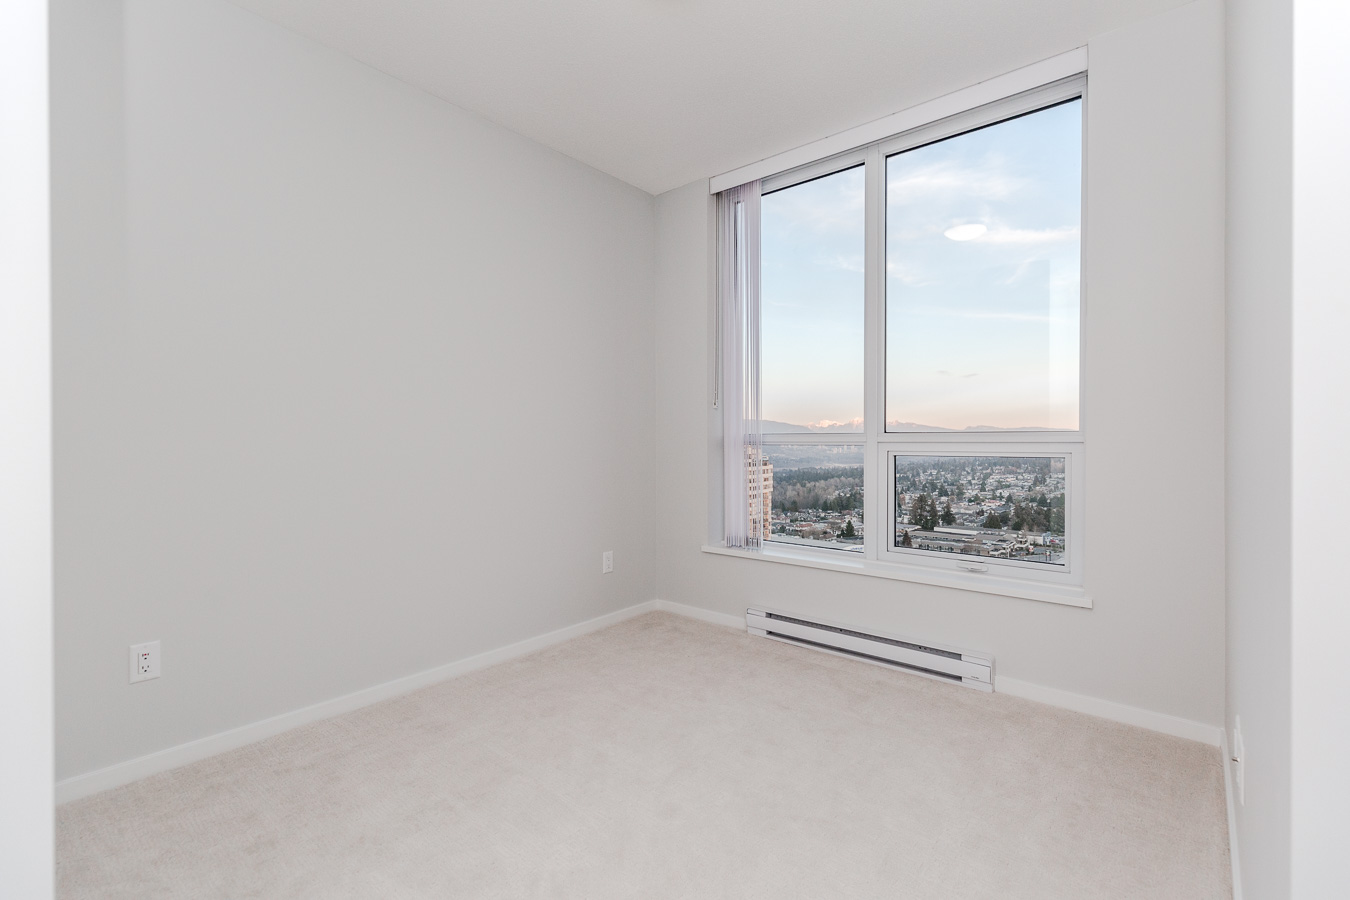 Bedroom with a view in Metrotown condo managed by Birds Nest Properties.